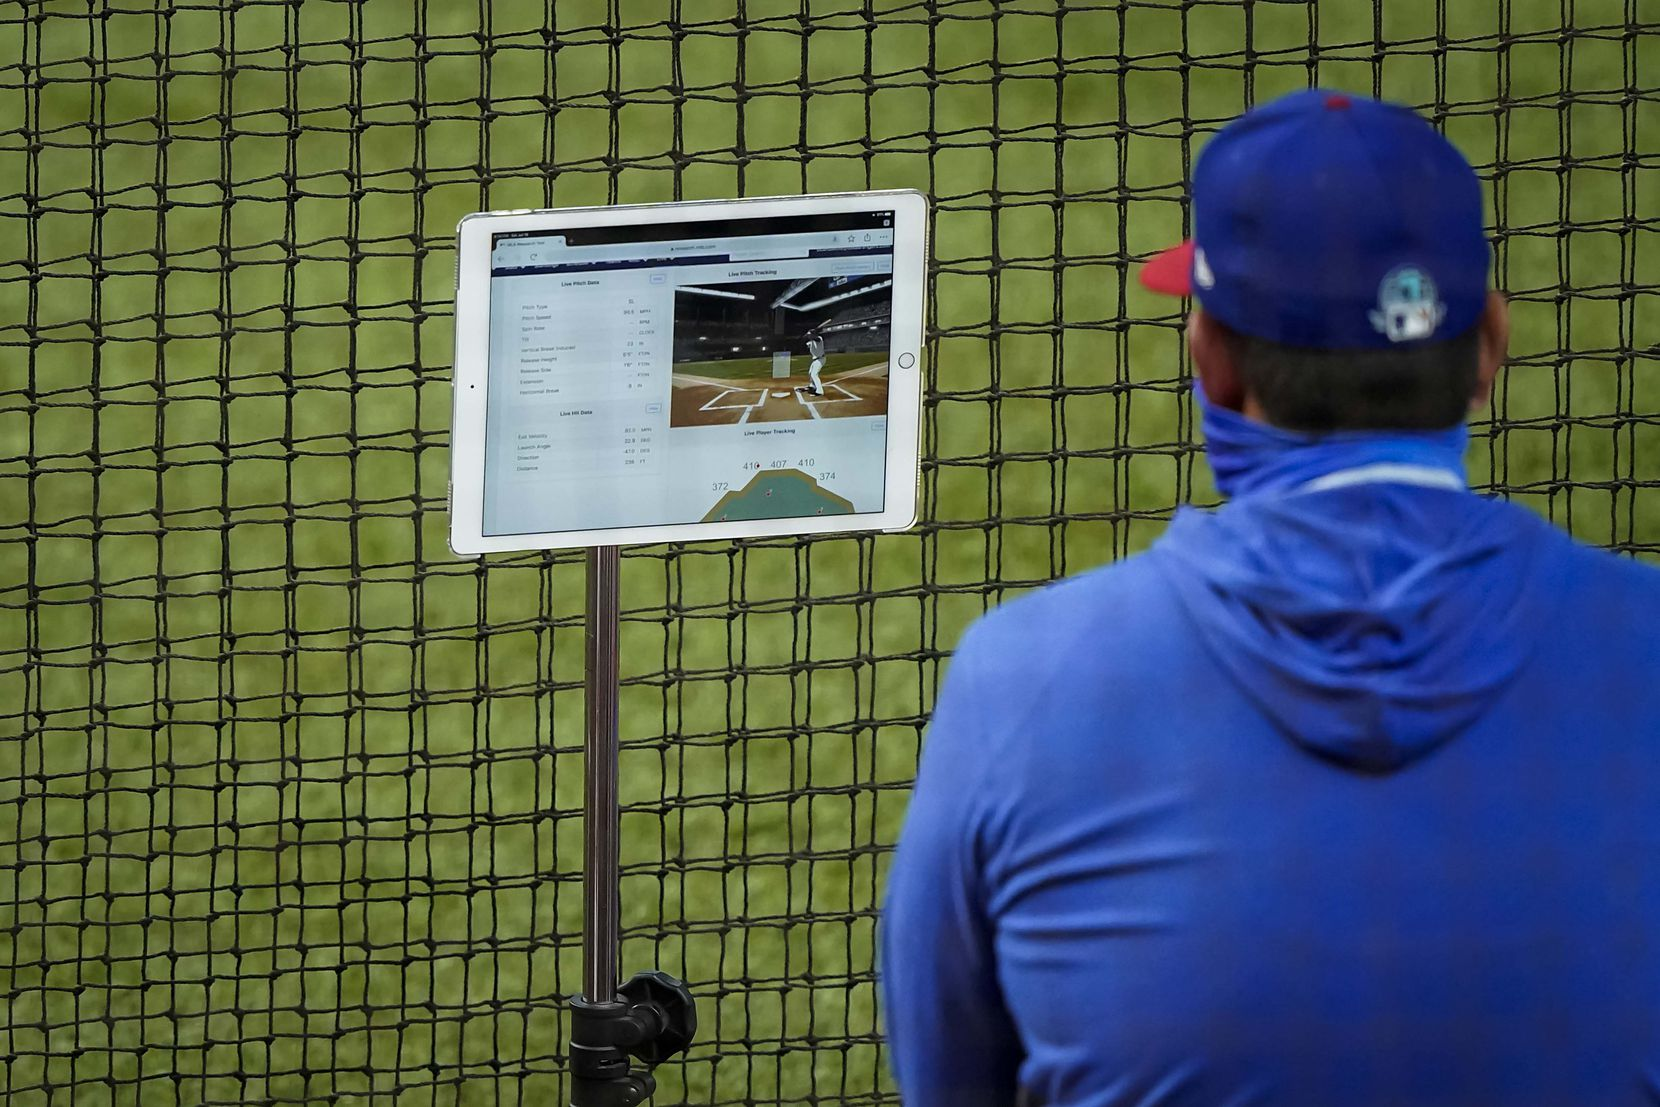 Pitching coach Julio Rangel looks over tracking data on a tablet in an intrasquad game during Texas Rangers Summer Camp at Globe Life Field on Saturday, July 18, 2020.